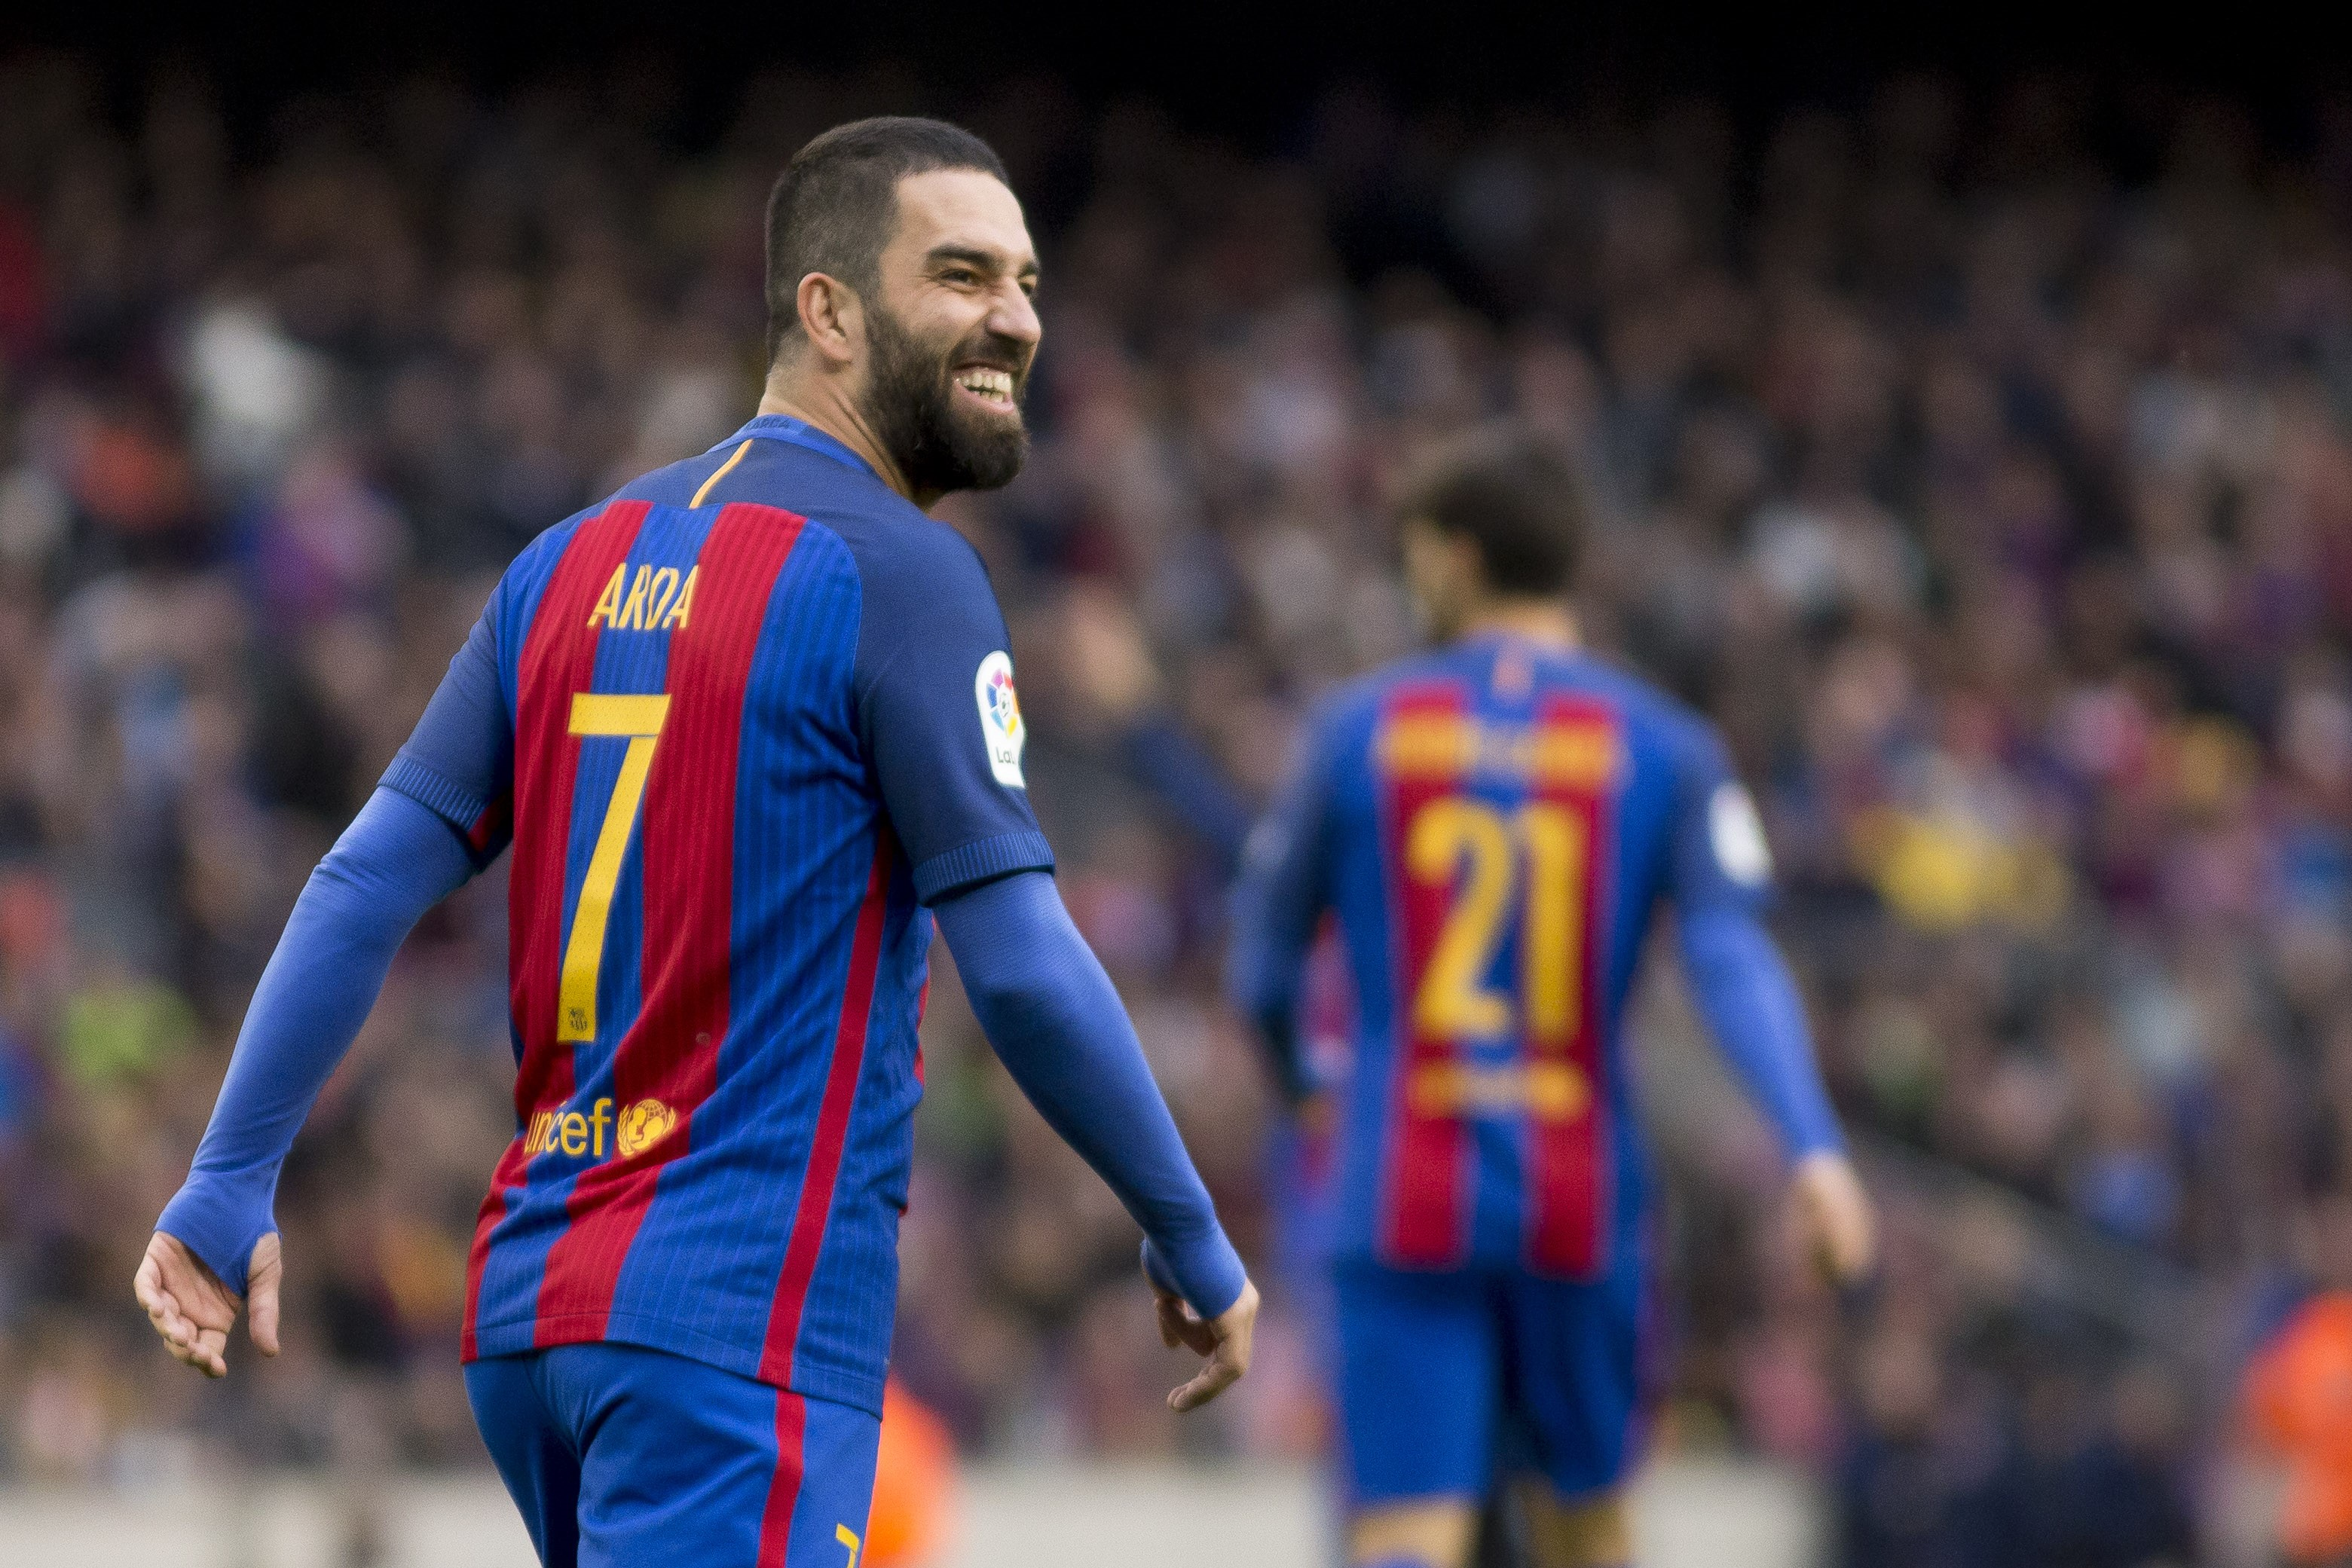 Arda Turan to Arsenal transfer stories dashed by agent